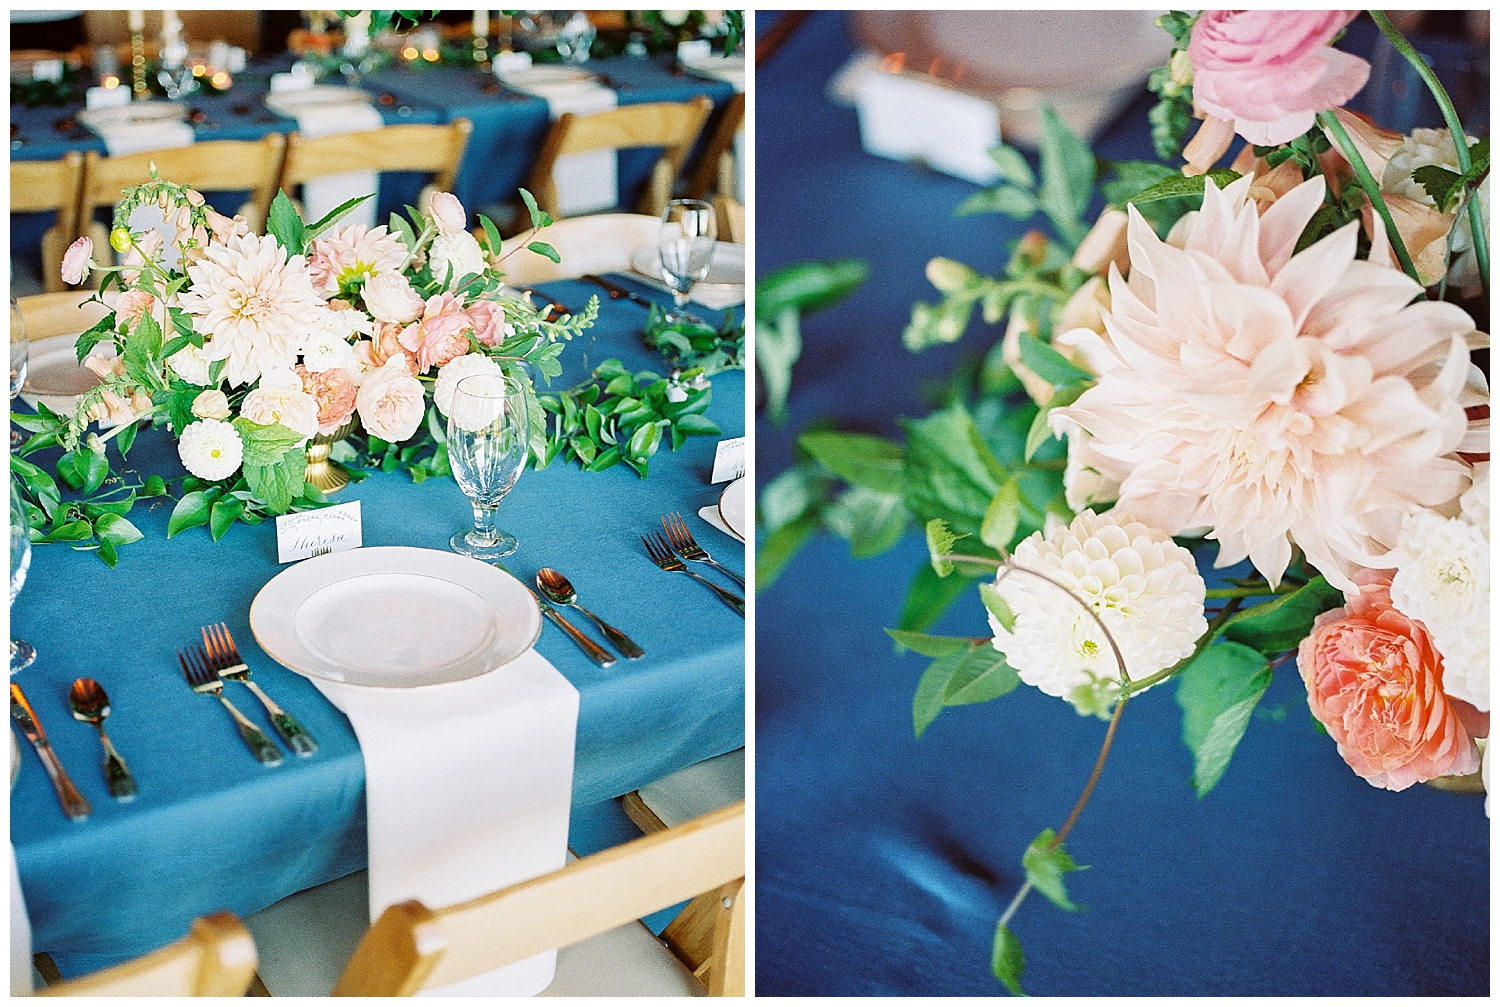 Best_Portland_Wedding_Florist_and_Design3.jpg